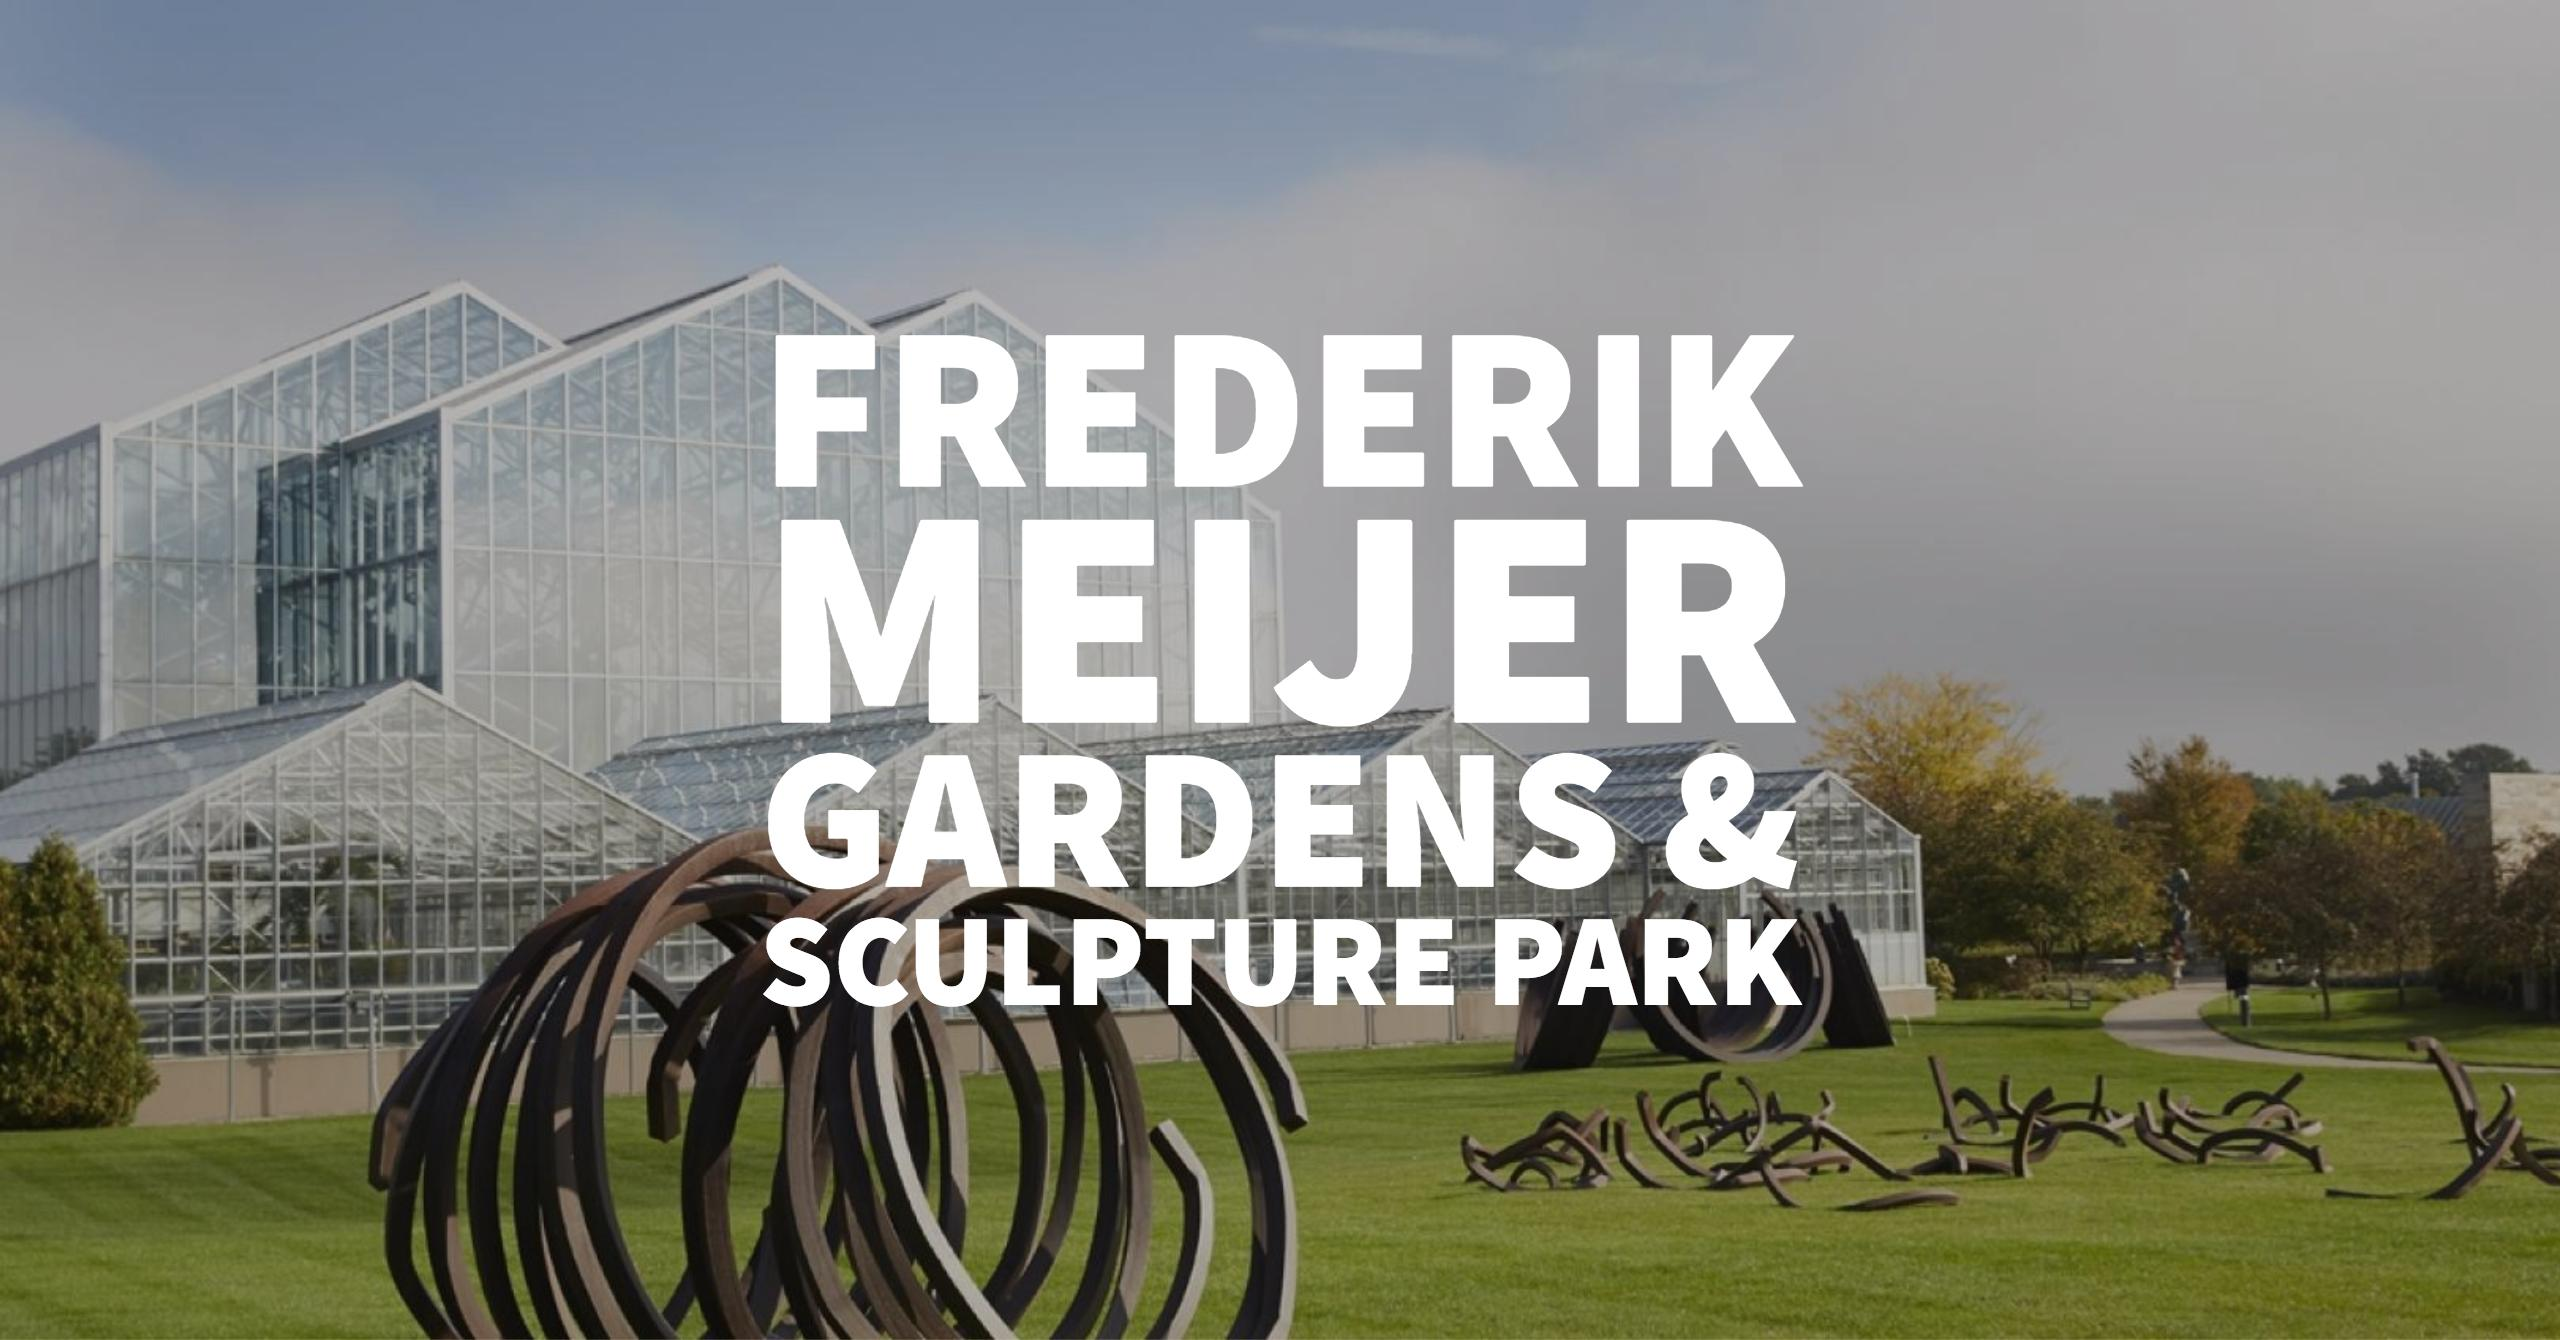 Frederik meijer gardens and sculpture park blu house - Frederik meijer gardens and sculpture park ...